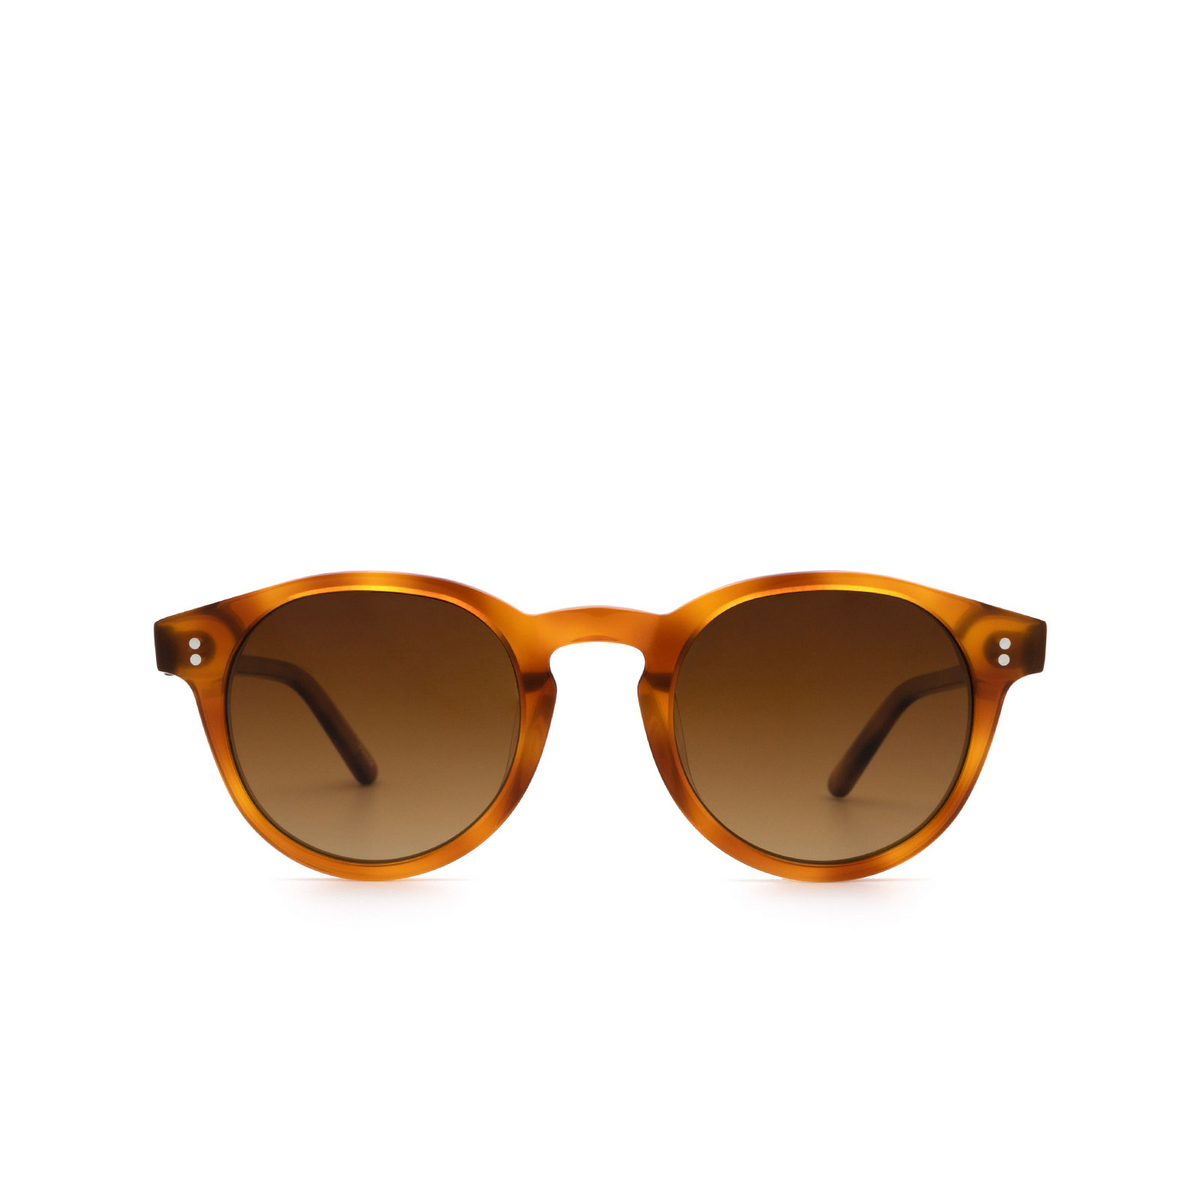 Chimi® Round Sunglasses: 03 color Havana - front view.